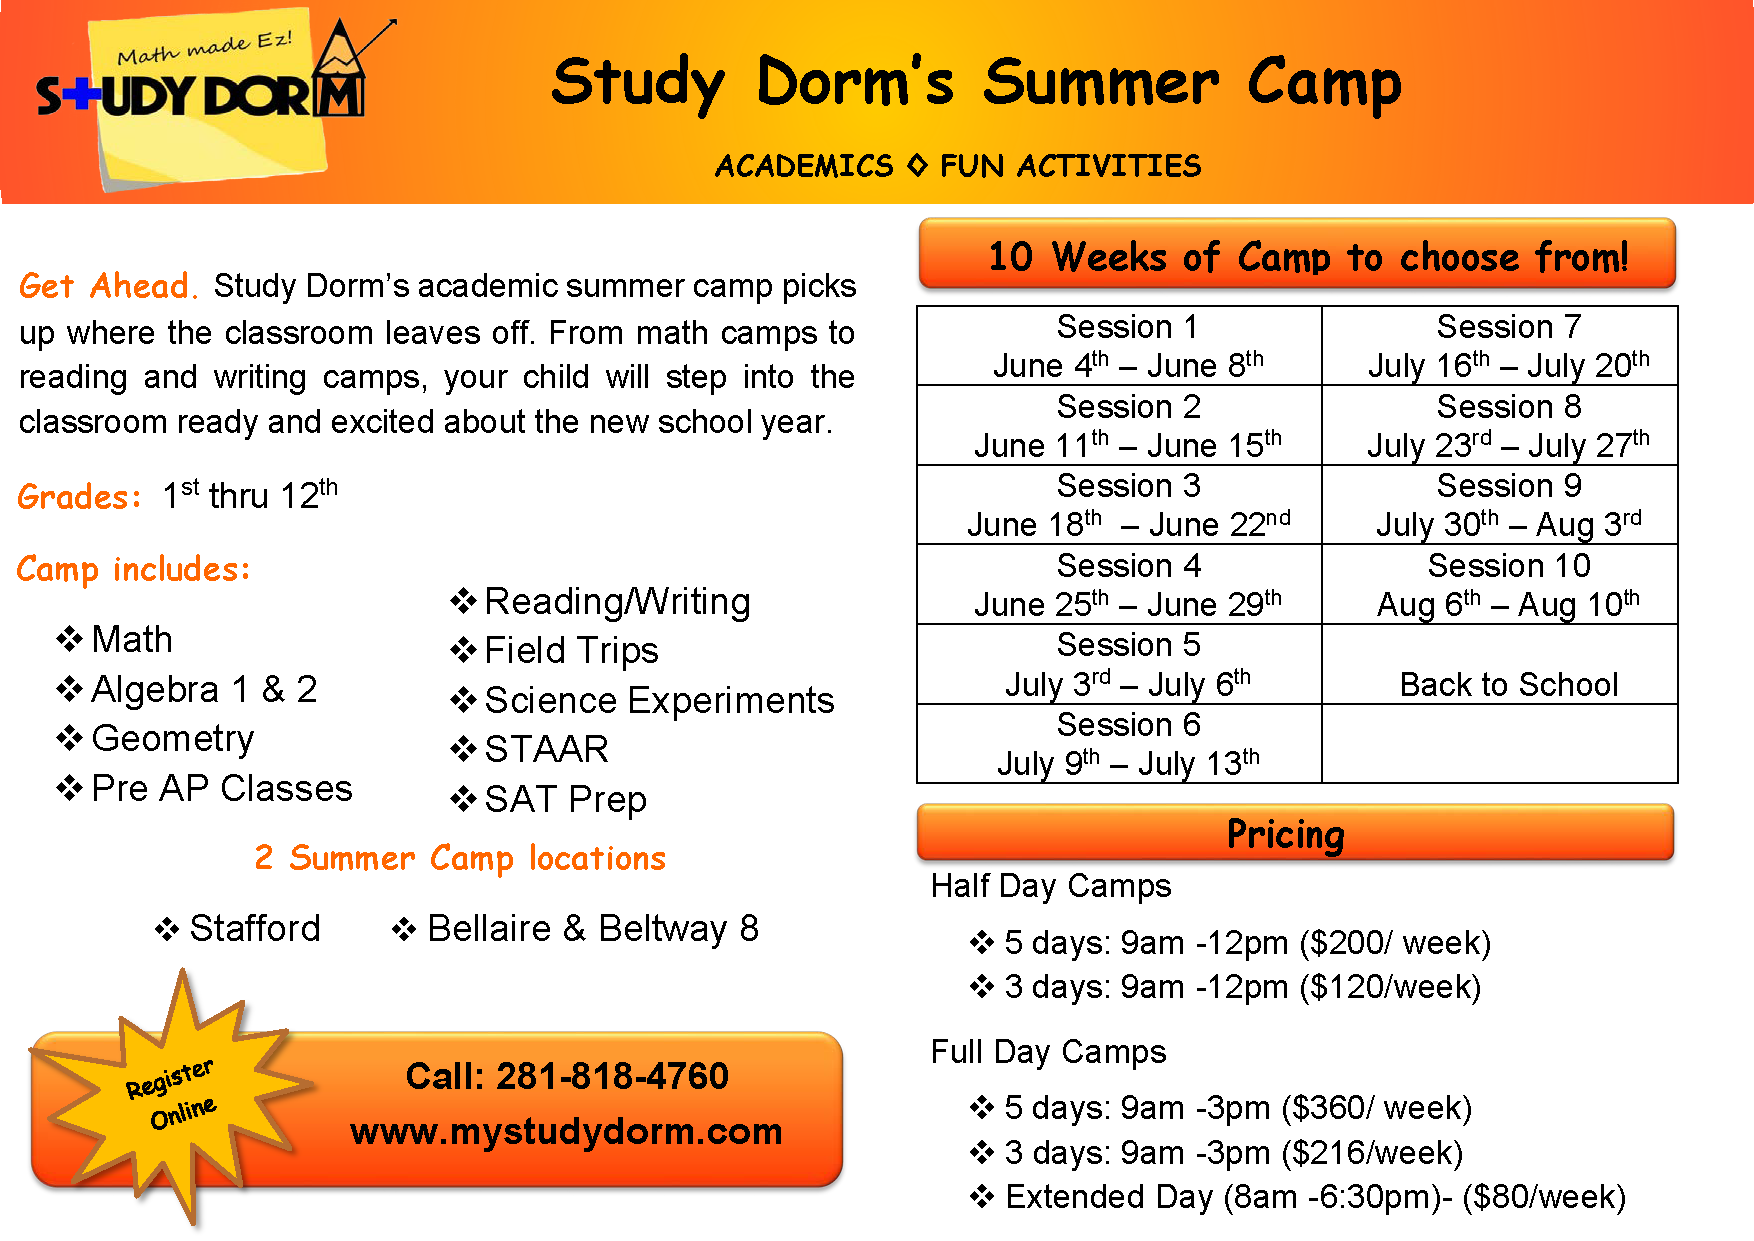 Academic Summer Camp for High School Students in Sugar Land